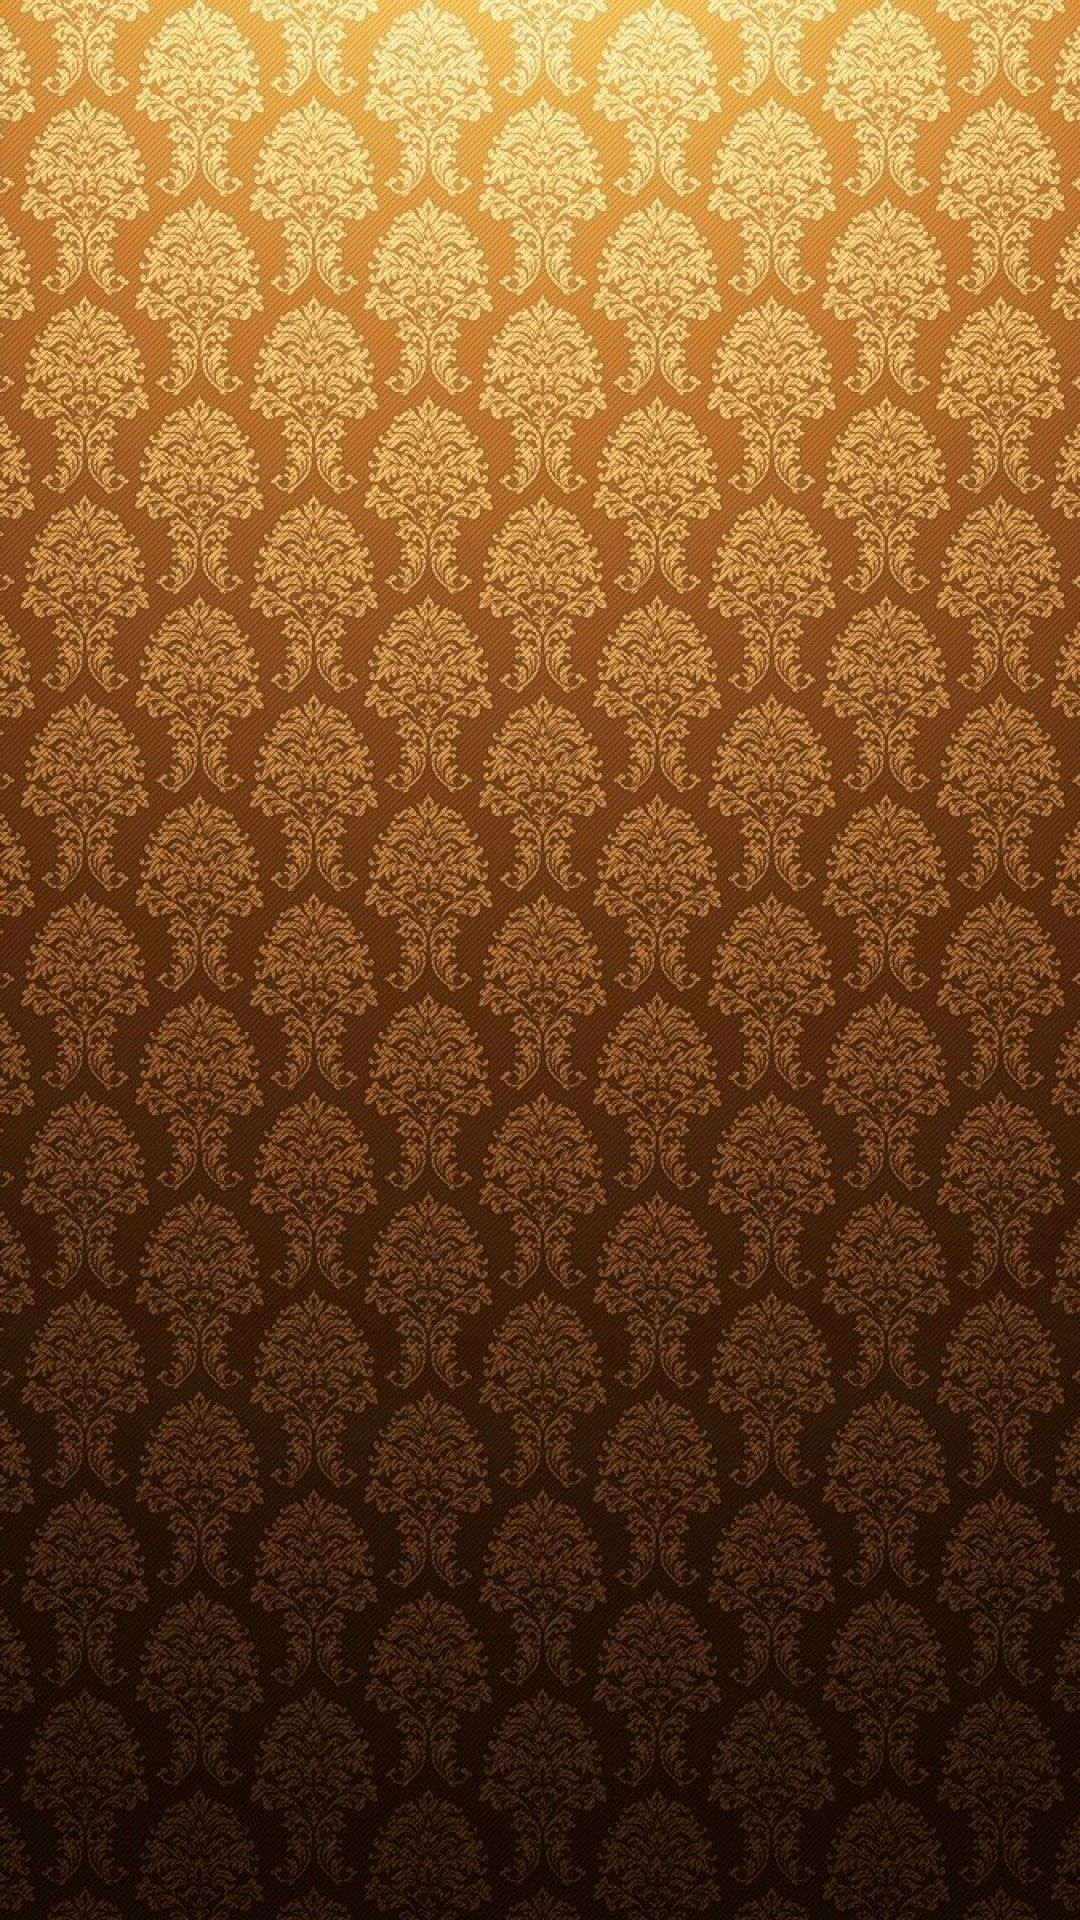 gold wallpapers android apps on google play